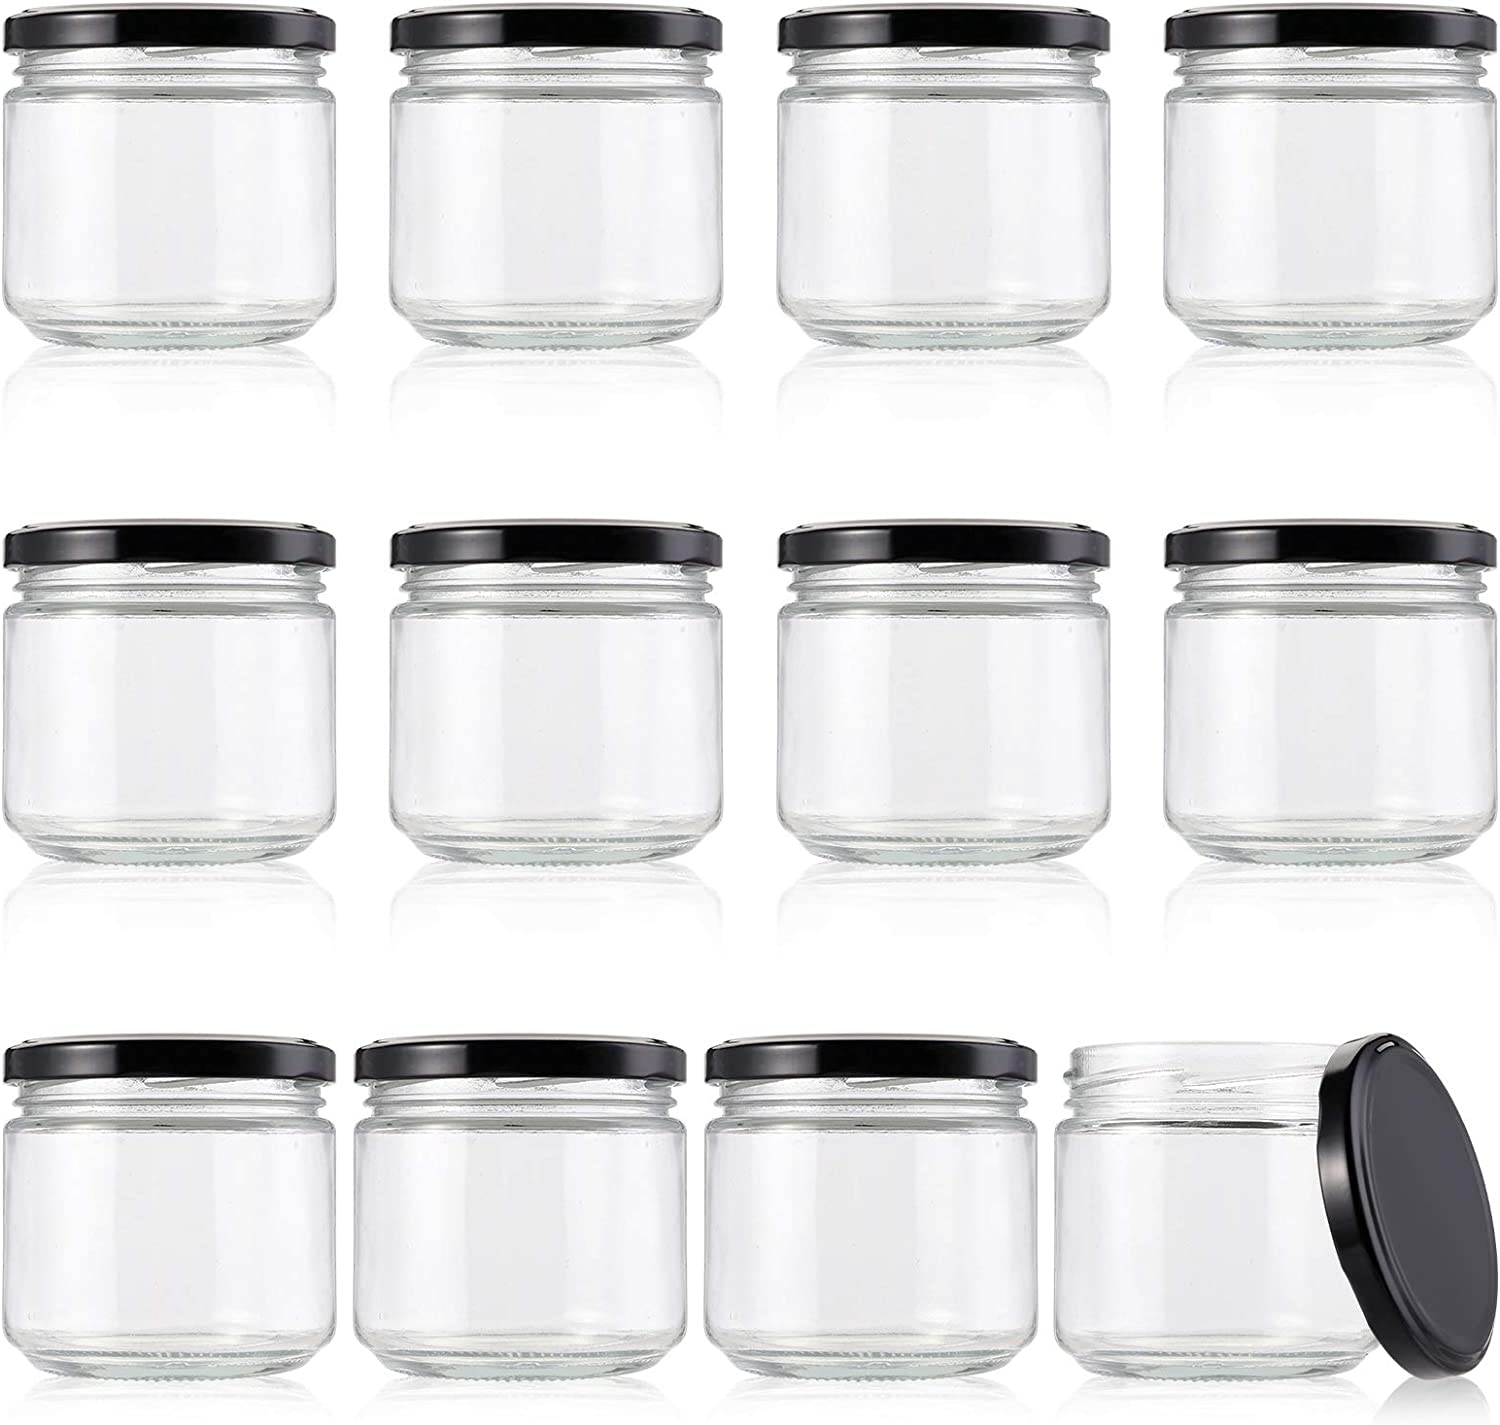 Lawei 12 Pack Glass Jars with Black Lids - 10 Oz Glass Mason Jars Clear Glass Candle Jars for Jams Honey Baby Foods Craft Spice Wedding Favors